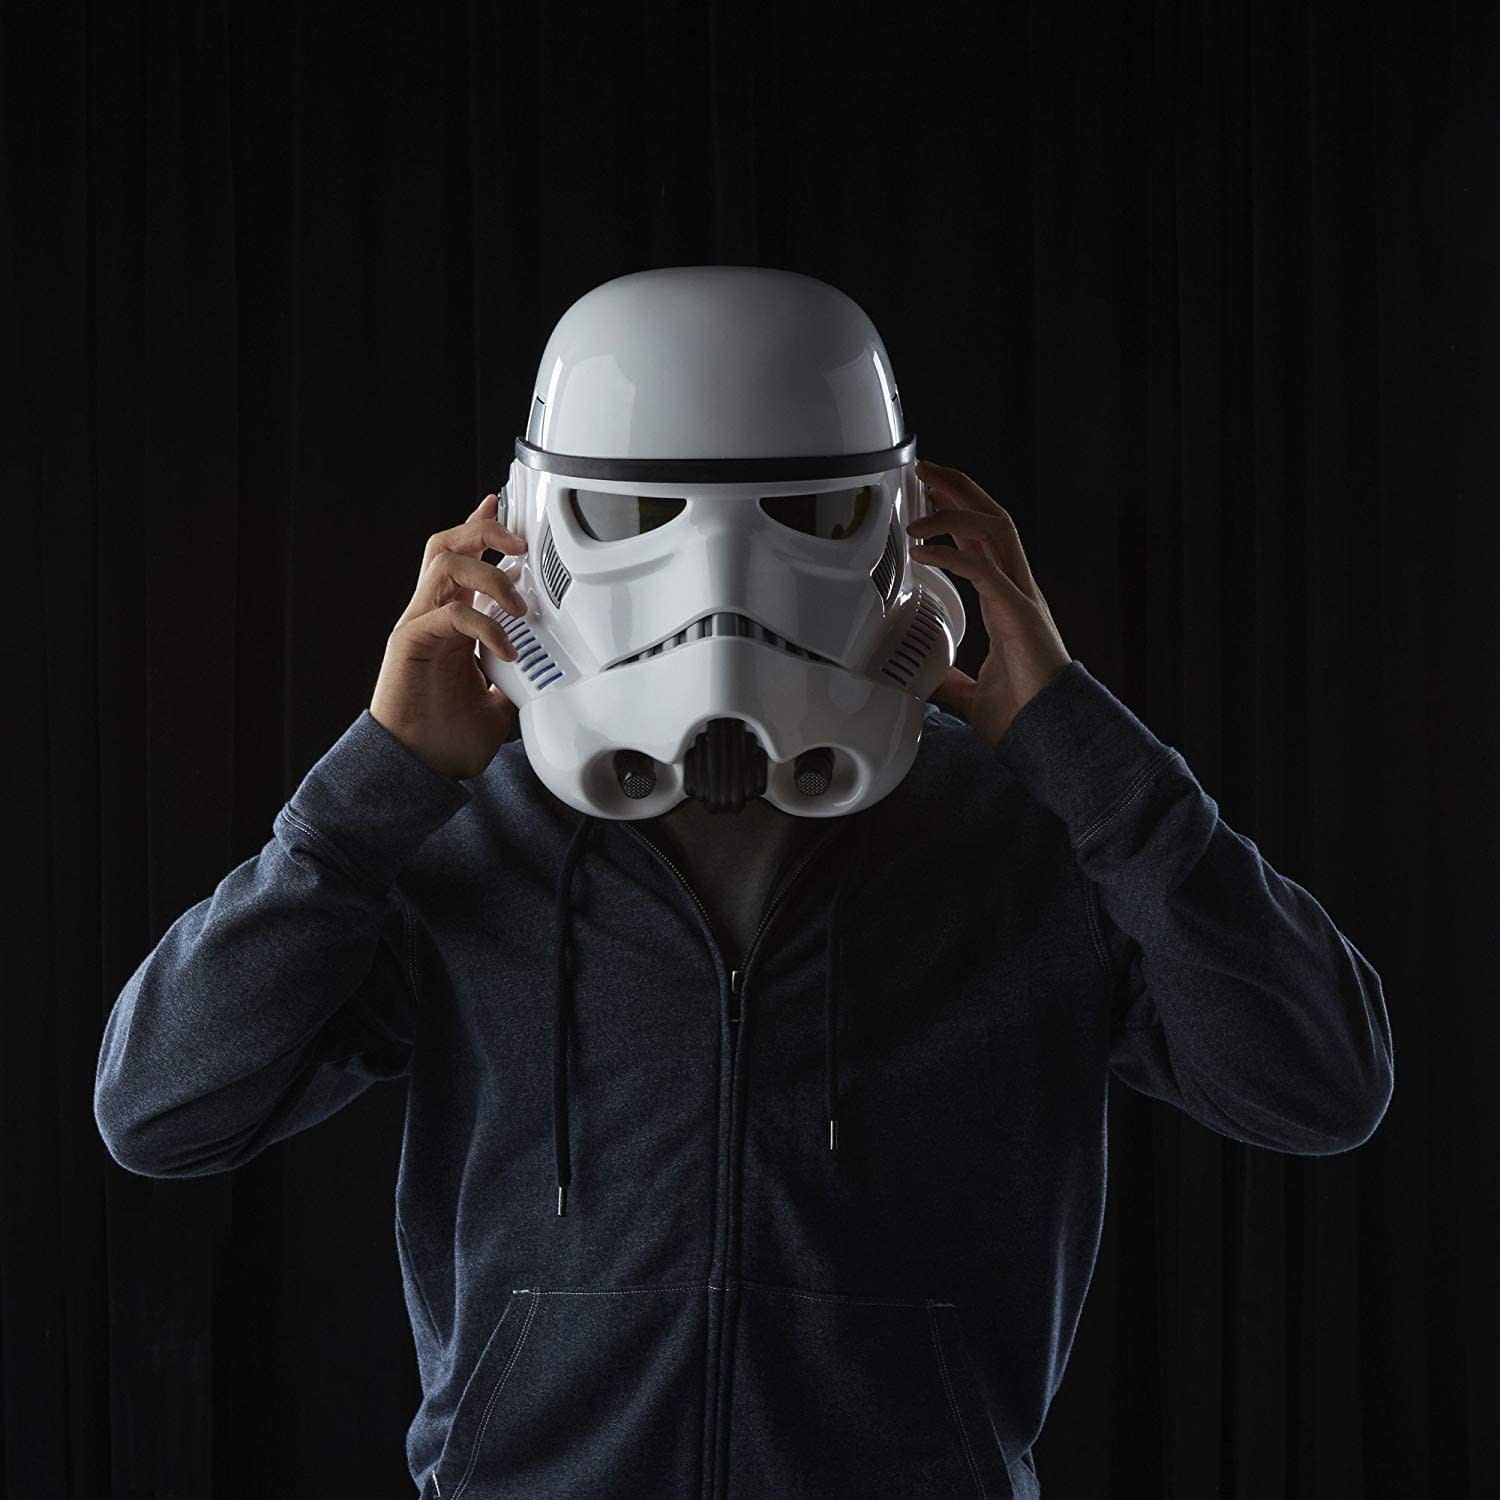 Star Wars Replica Helmets from Hasbro Perfect for Your Collection